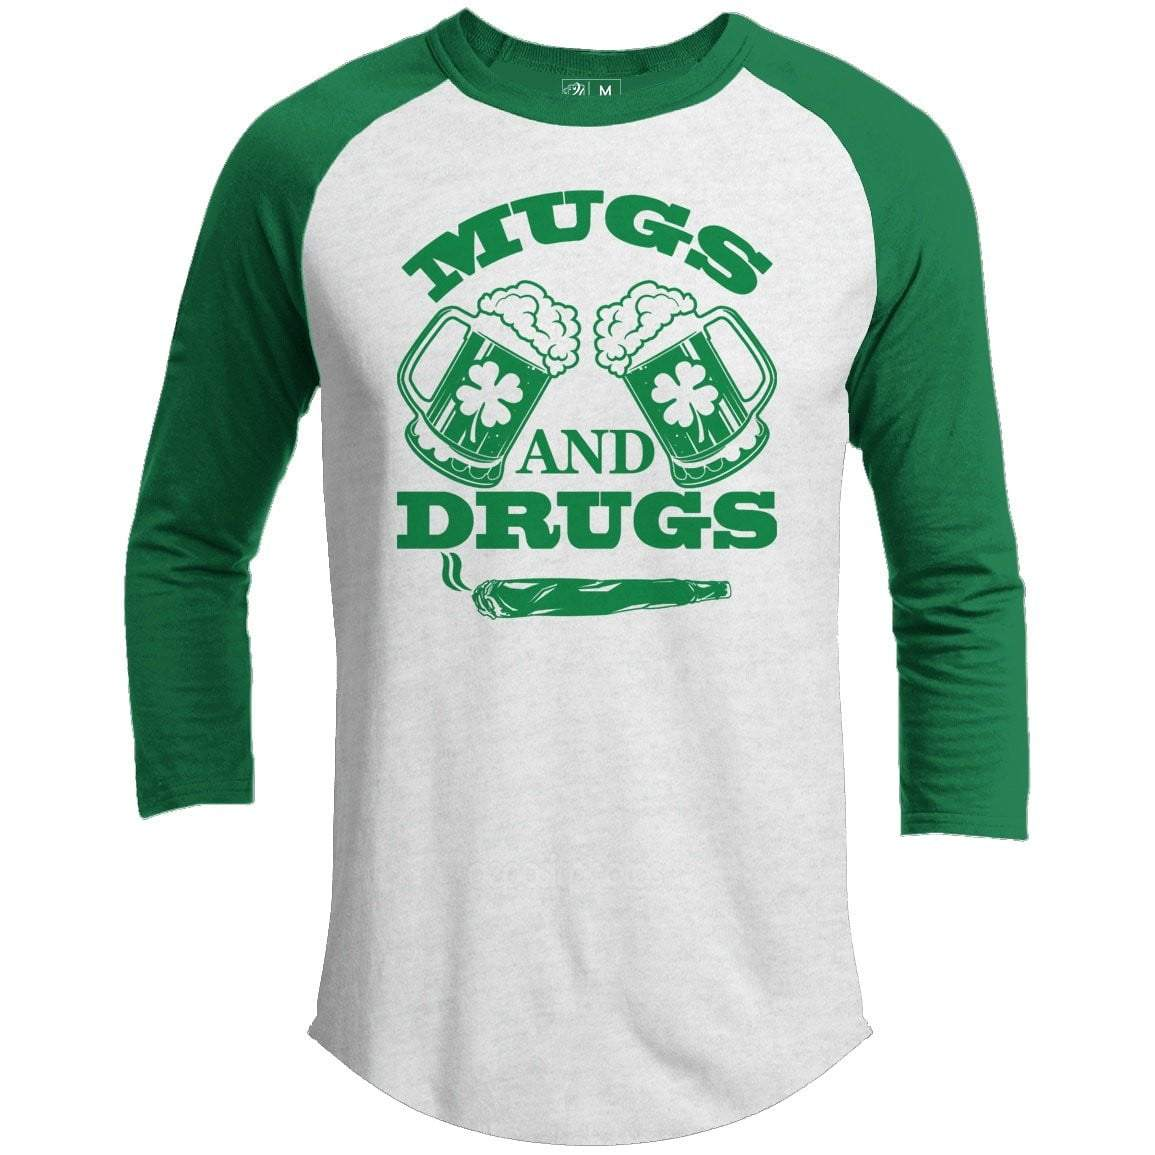 Mugs And Drugs St. Patrick's Day Raglan